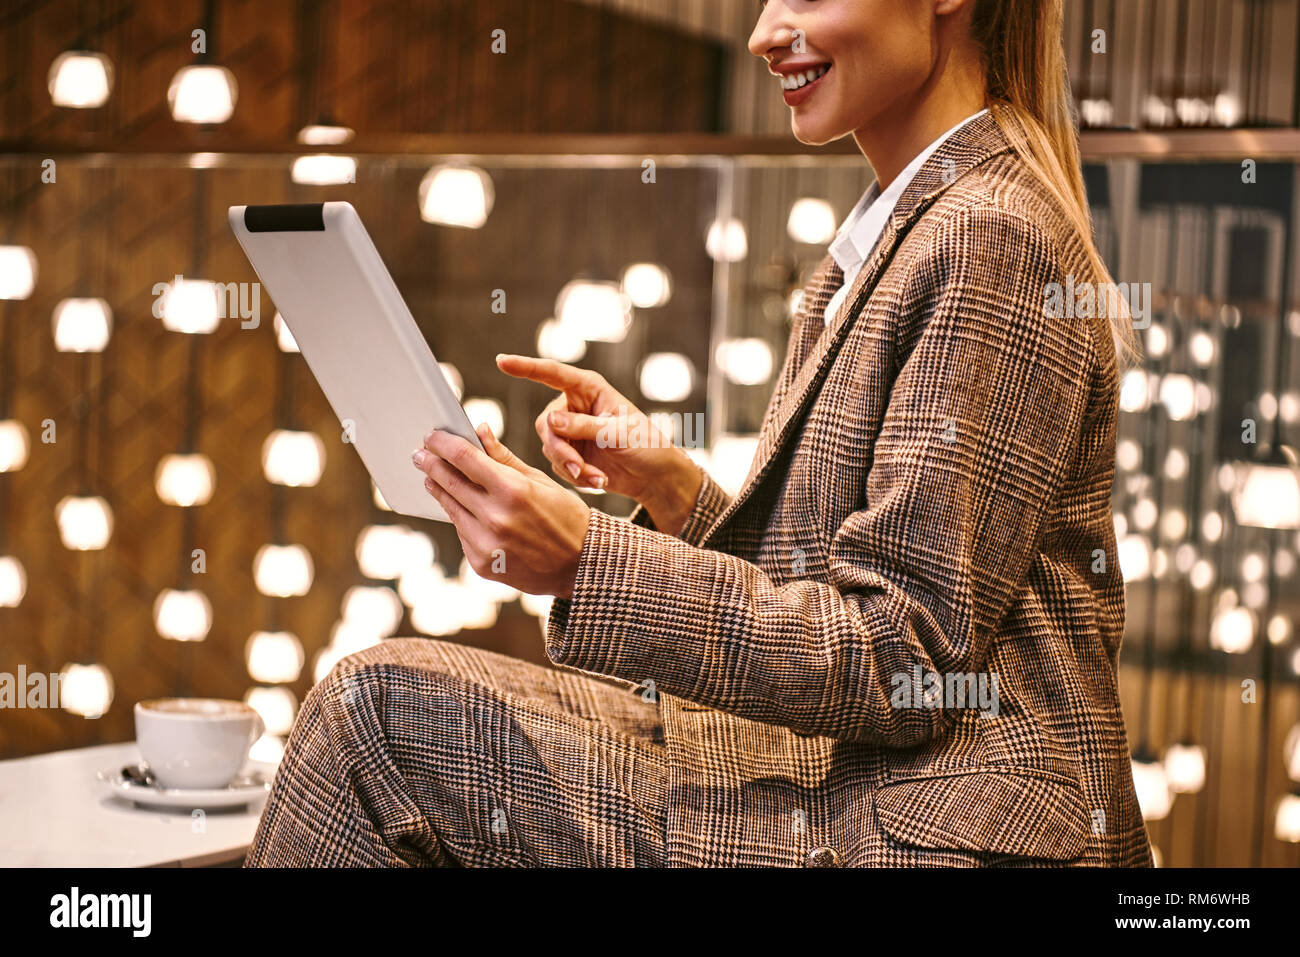 Waiting for business partner. Cropped photo of happy young woman using digital tablet while sitting at hotel restaurant nearby suitcase. Luxury interiour at backbround - Stock Image